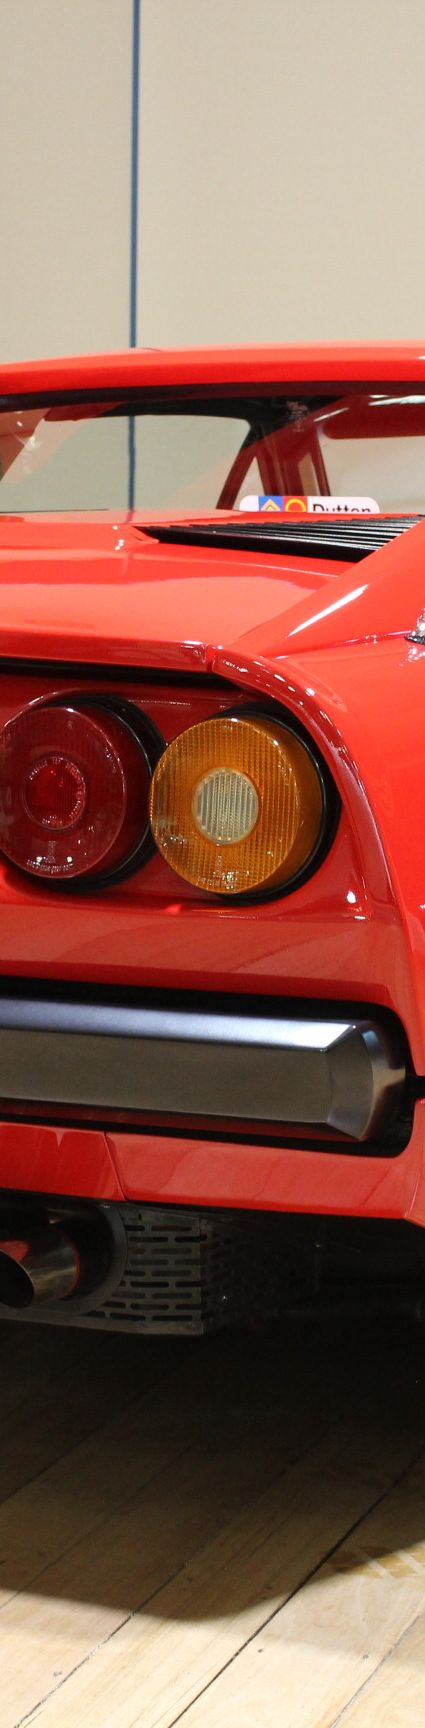 1979 Ferrari 308 GTS Carburetor - for sale in Australia